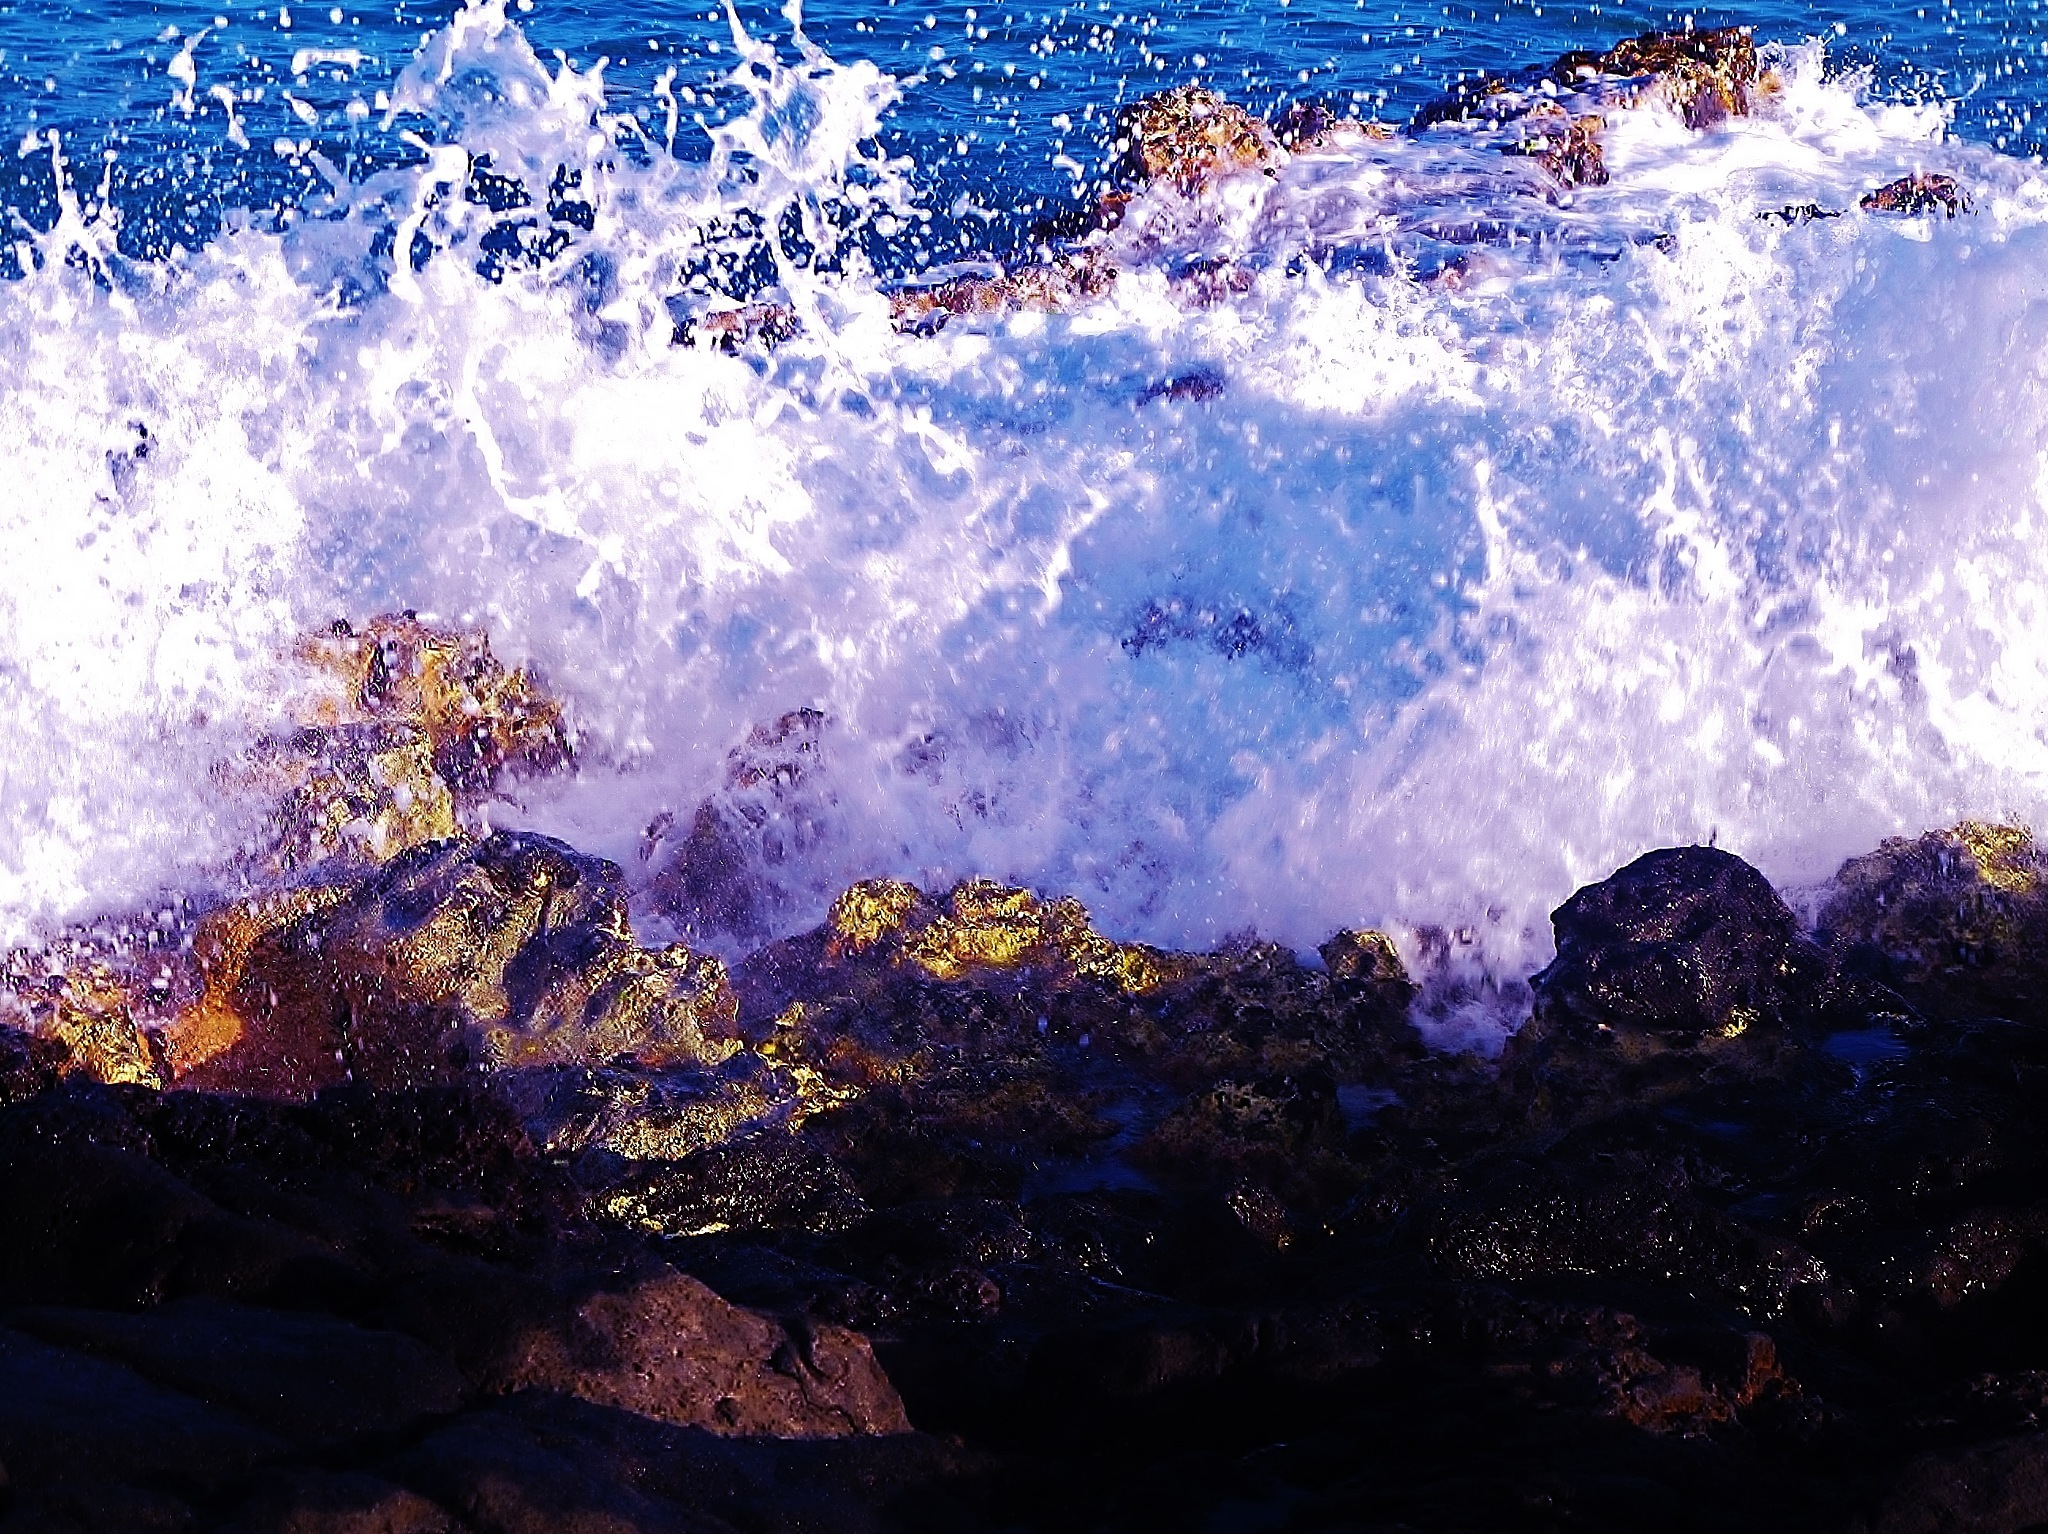 WATER ON THE ROCKS . by paulcrimi178